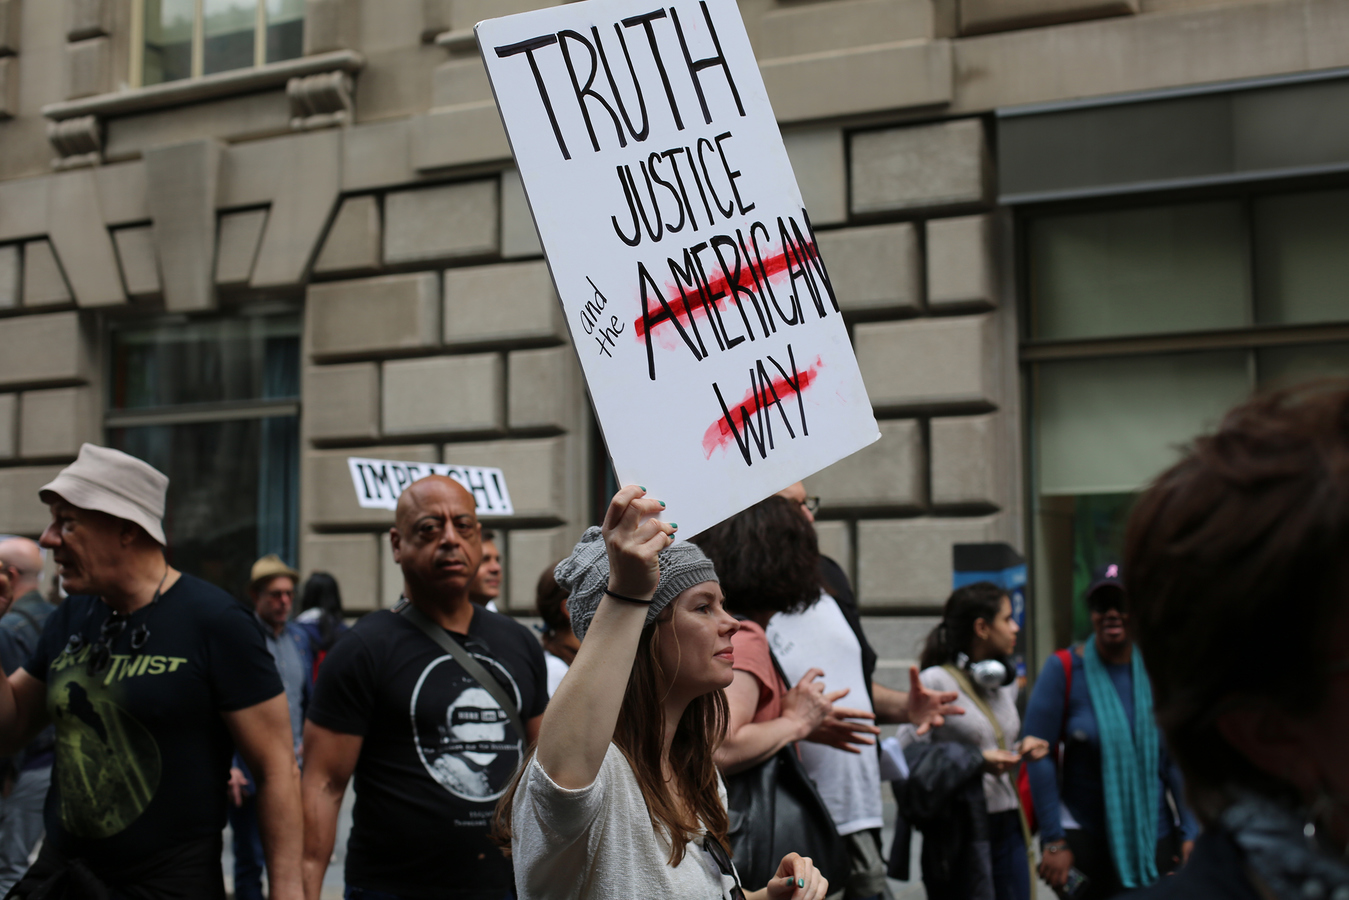 Other Protests March for Truth NYC 6/3/17